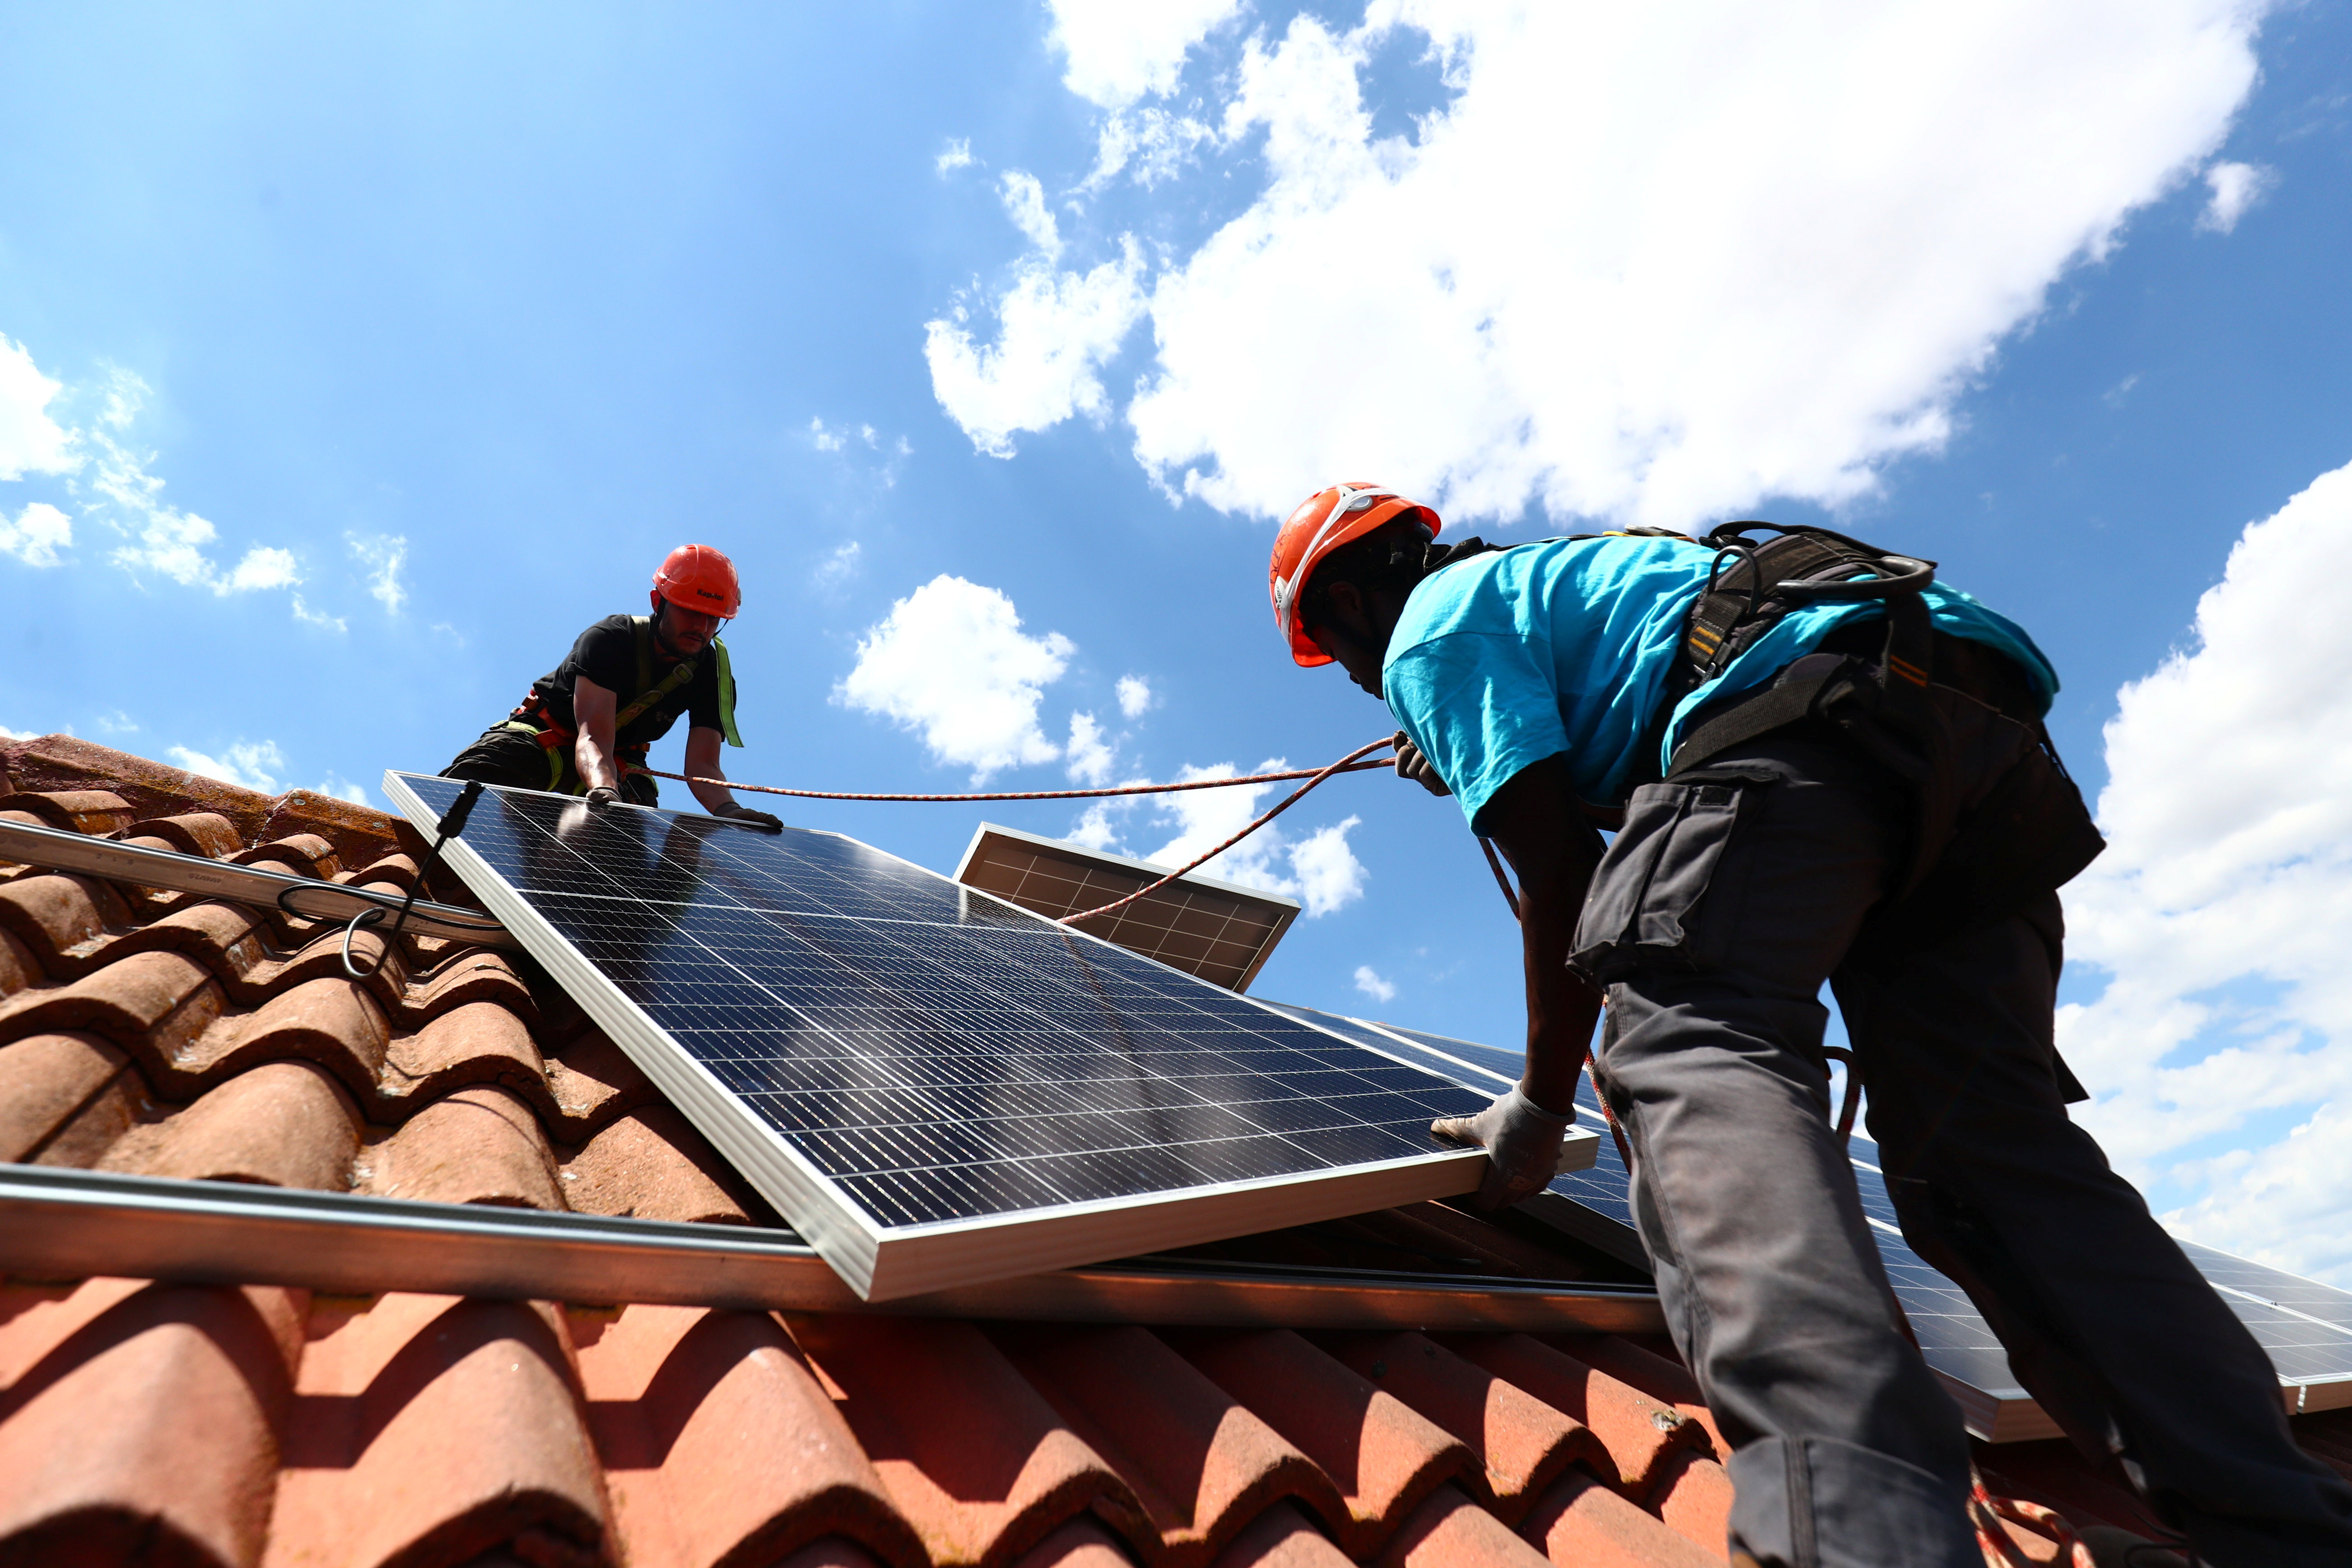 Rodrigue Kauahou and Jose Carlos Navarro, workers of the installation company Alromar, set up solar panels on the roof of a home in Colmenar Viejo, Spain June 19, 2020. Picture taken June 19, 2020. REUTERS/Sergio Perez - RC2HPH9WJ274